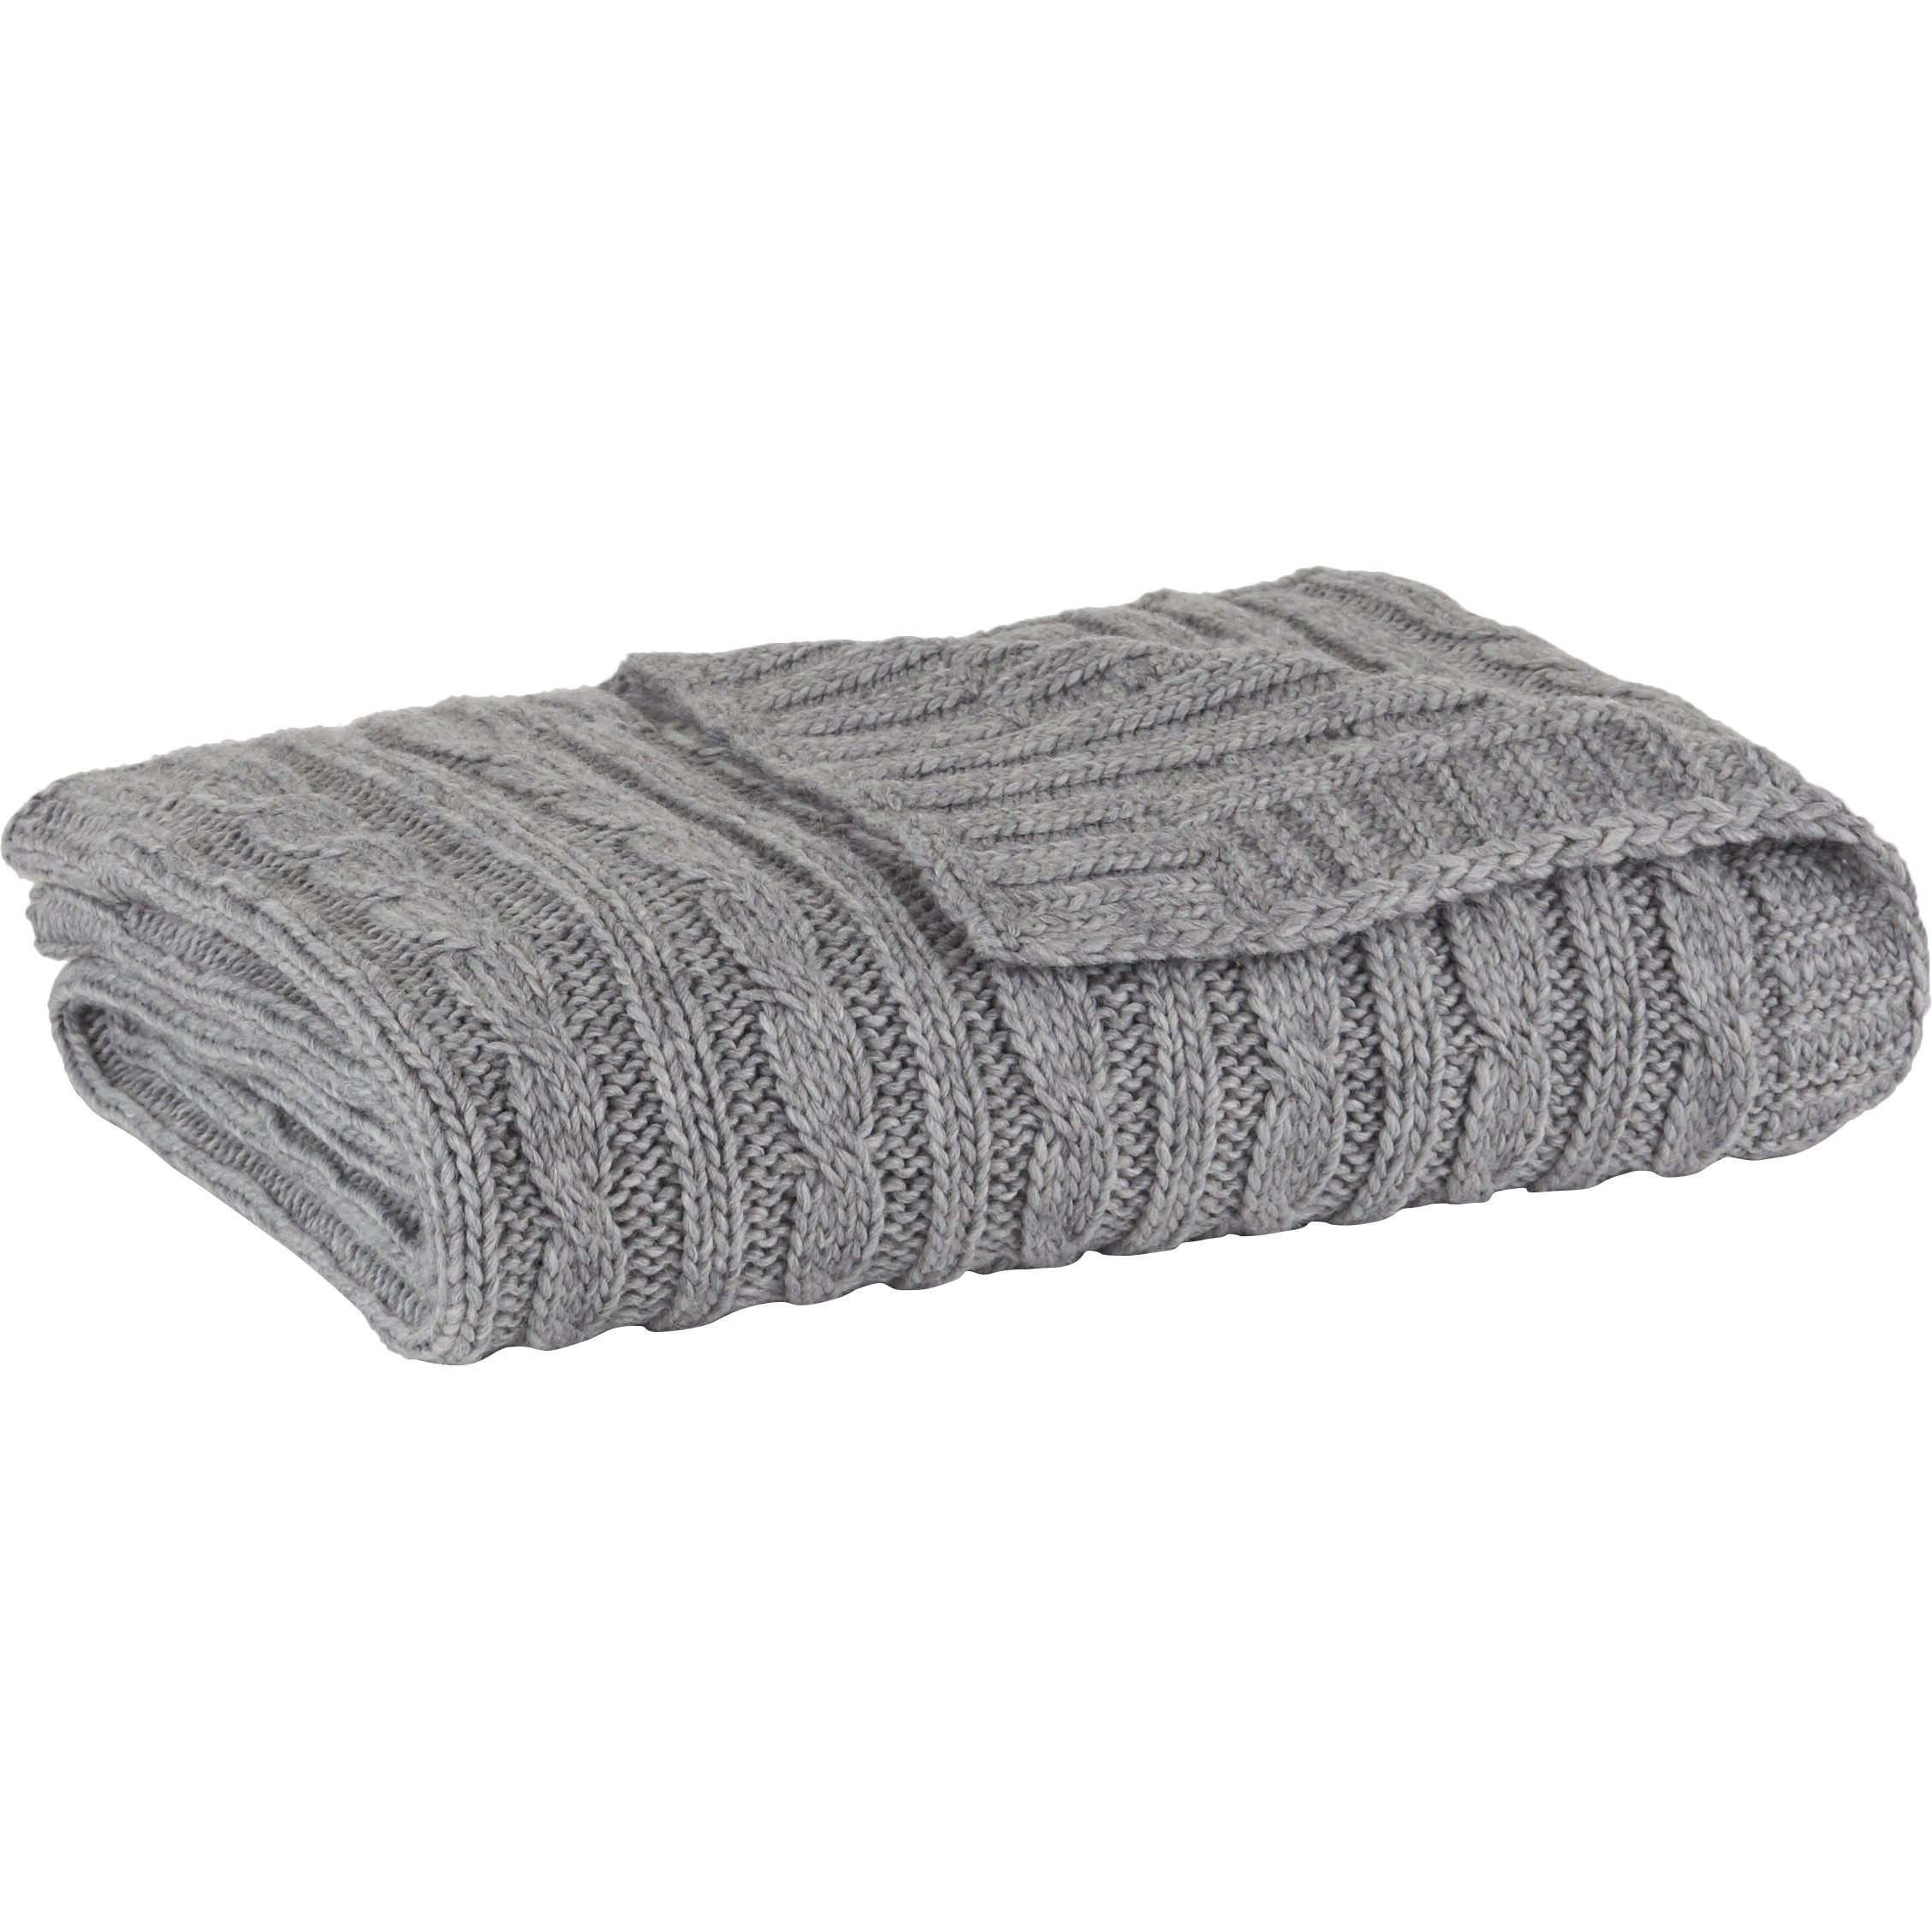 Cable Knit Throw Fresh Three Posts Deluxe Cable Knit Throw Blanket & Reviews Of Charming 49 Models Cable Knit Throw